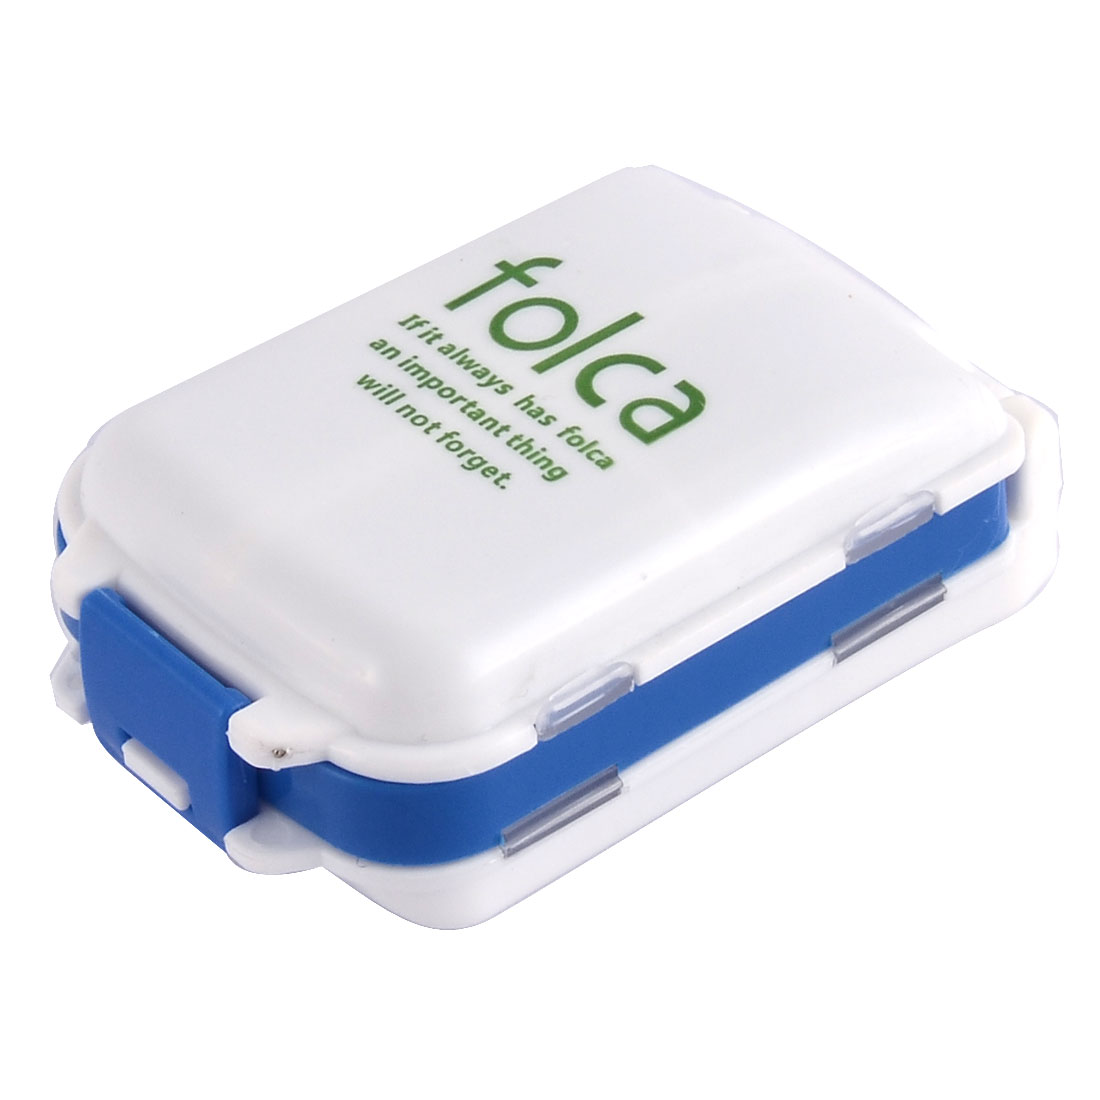 Plastic Square Shape 3 Layers Medicine Pill Box Case Container White Blue